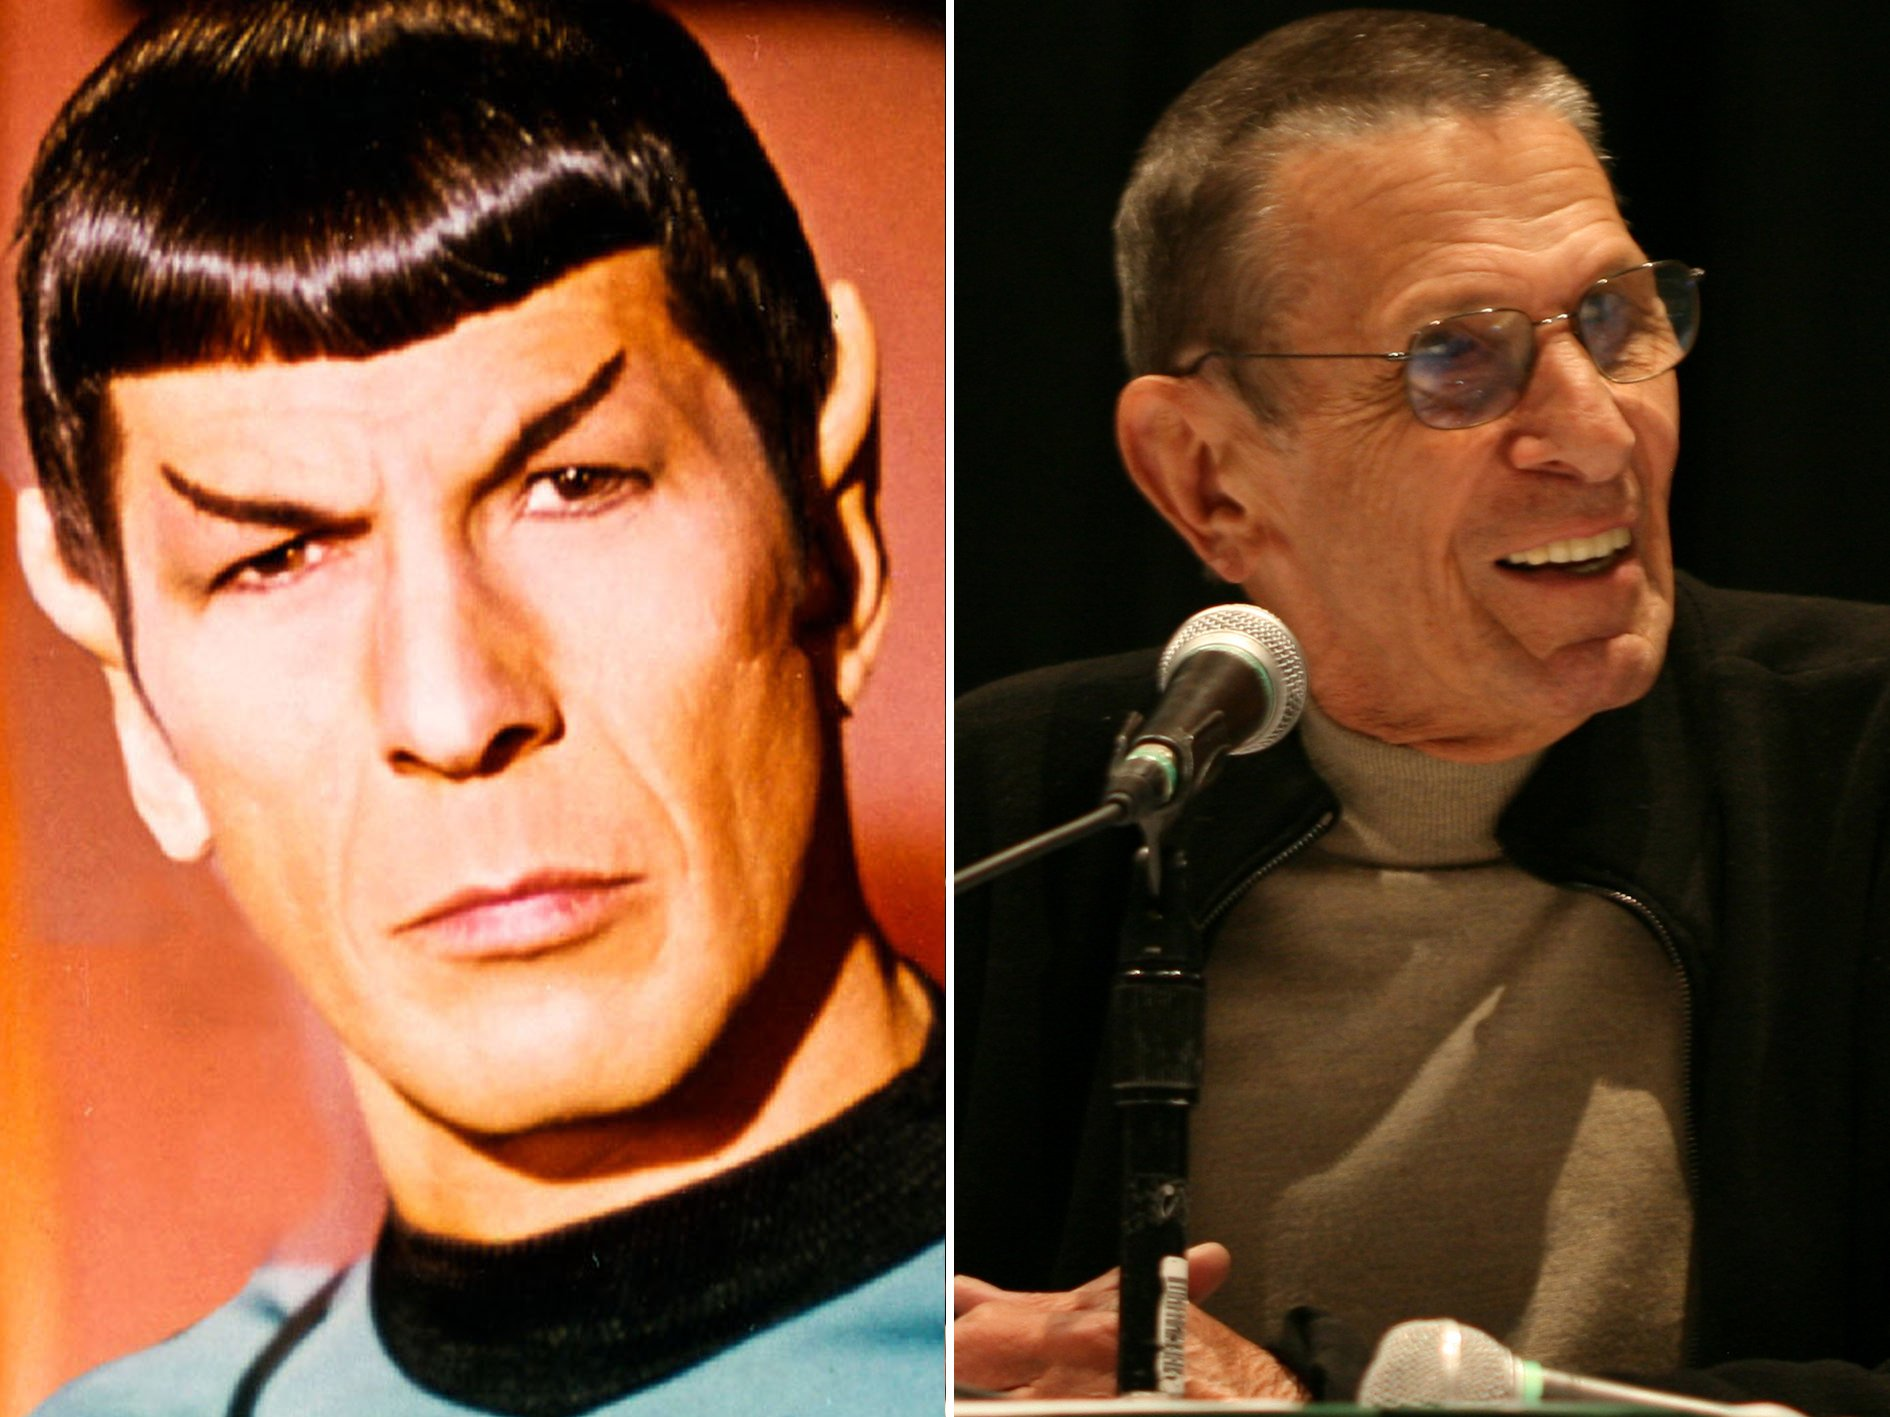 Leonard Nimoy 20 Things You Probably Didn't Know About Three Men And A Baby